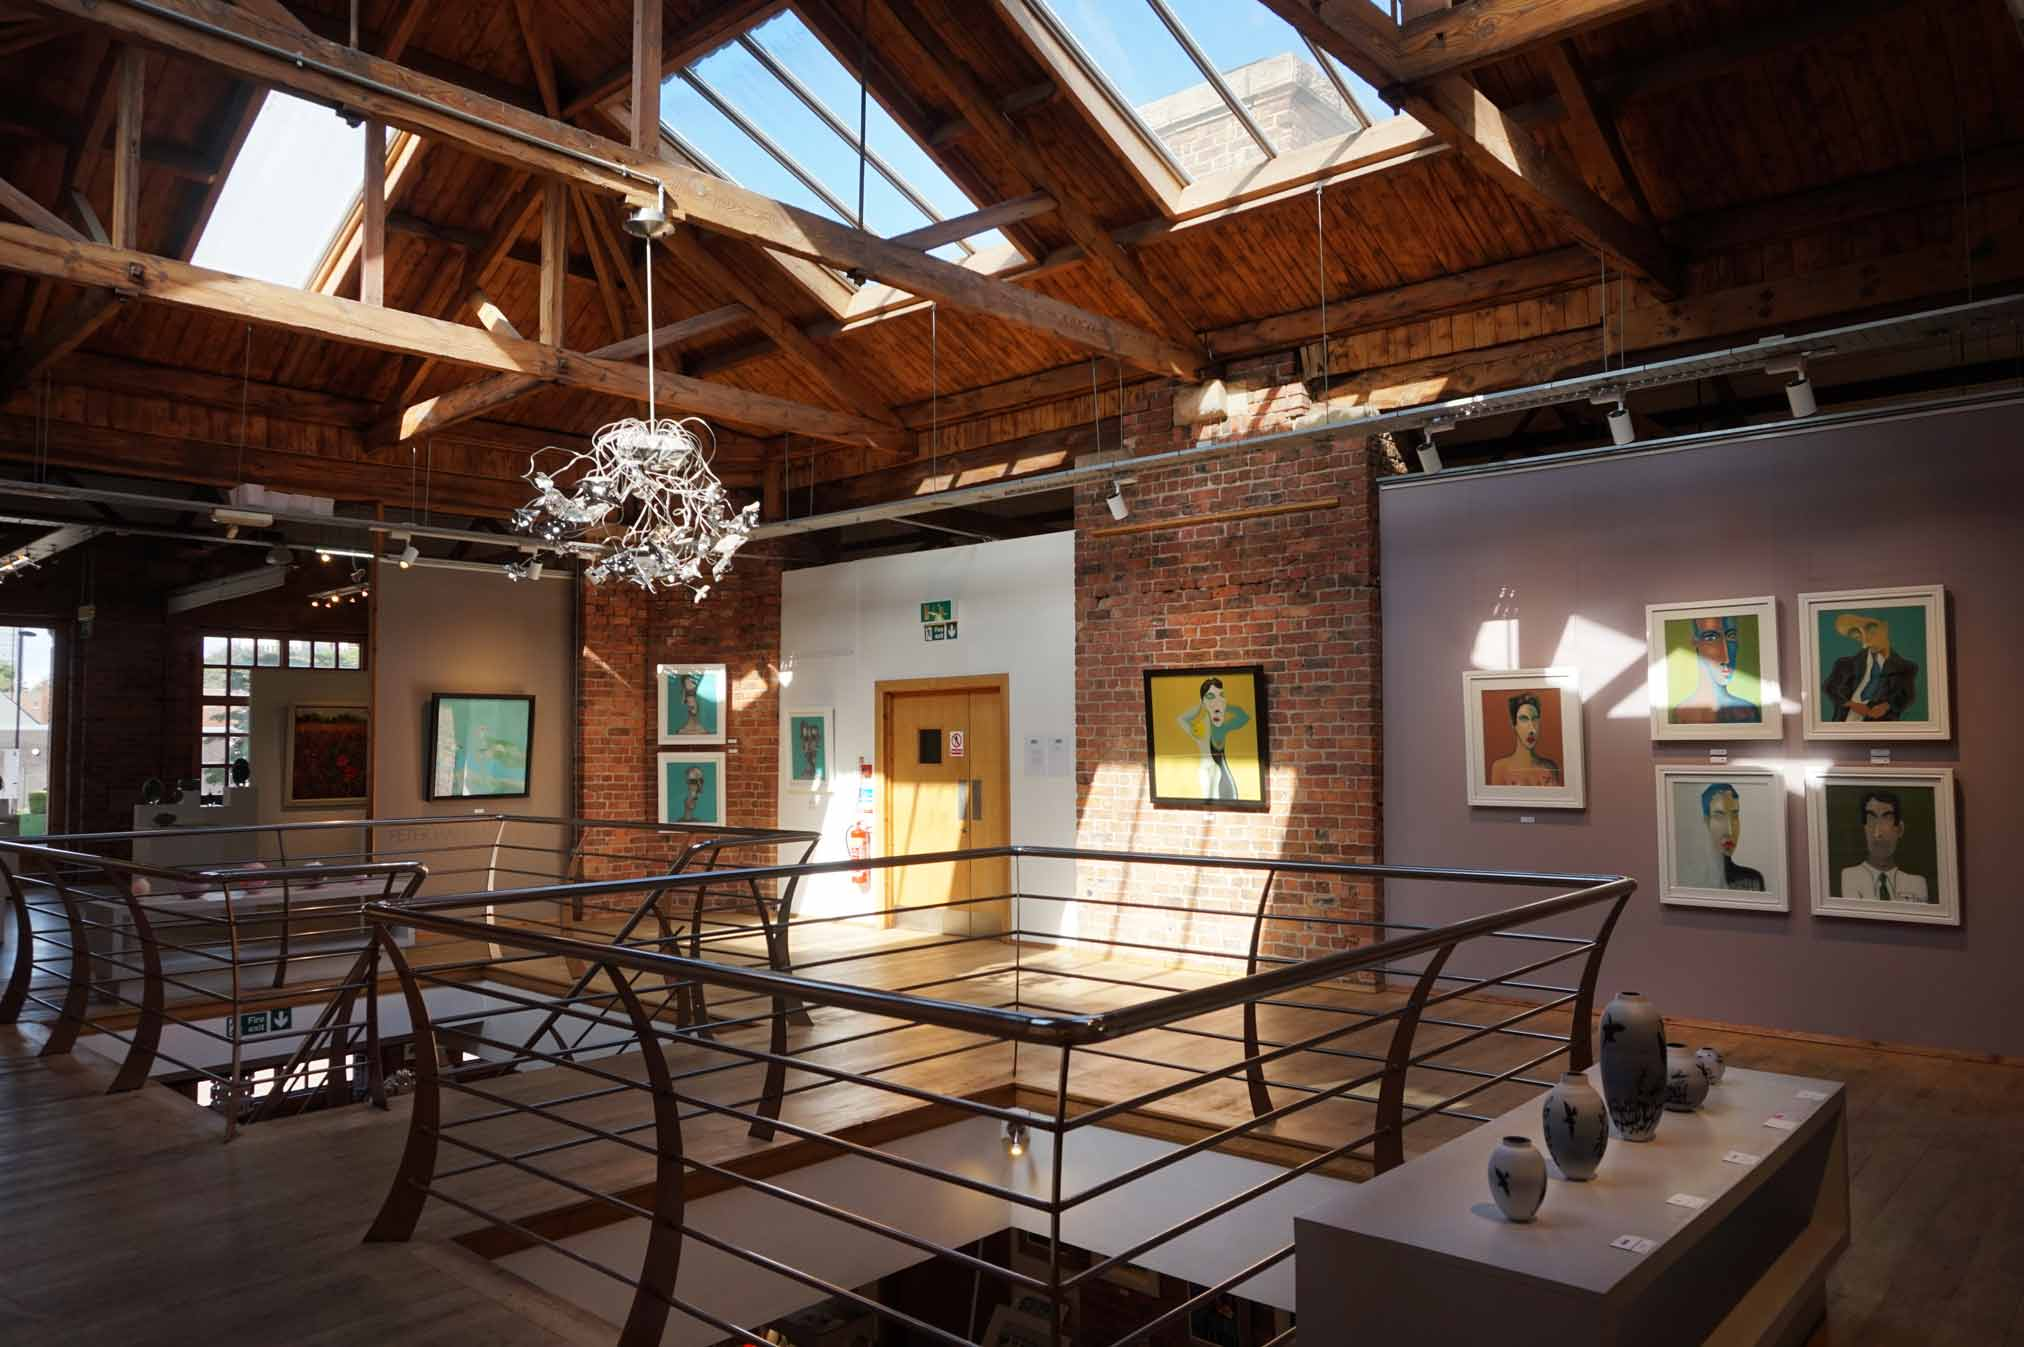 The Biscuit Factory gallery space